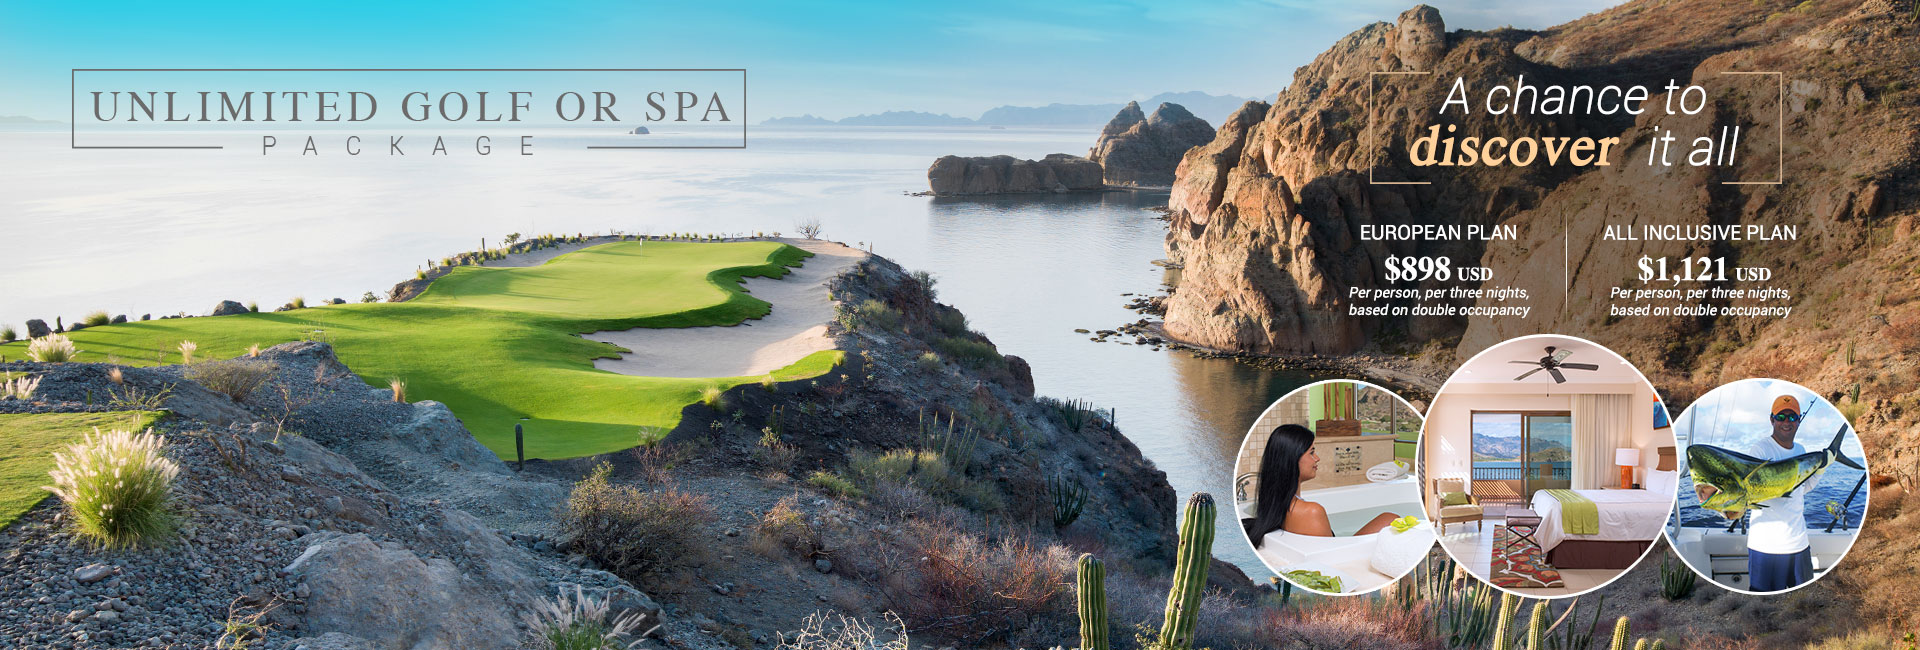 TPC Danzante Bay Unlimited Golf or Spa package